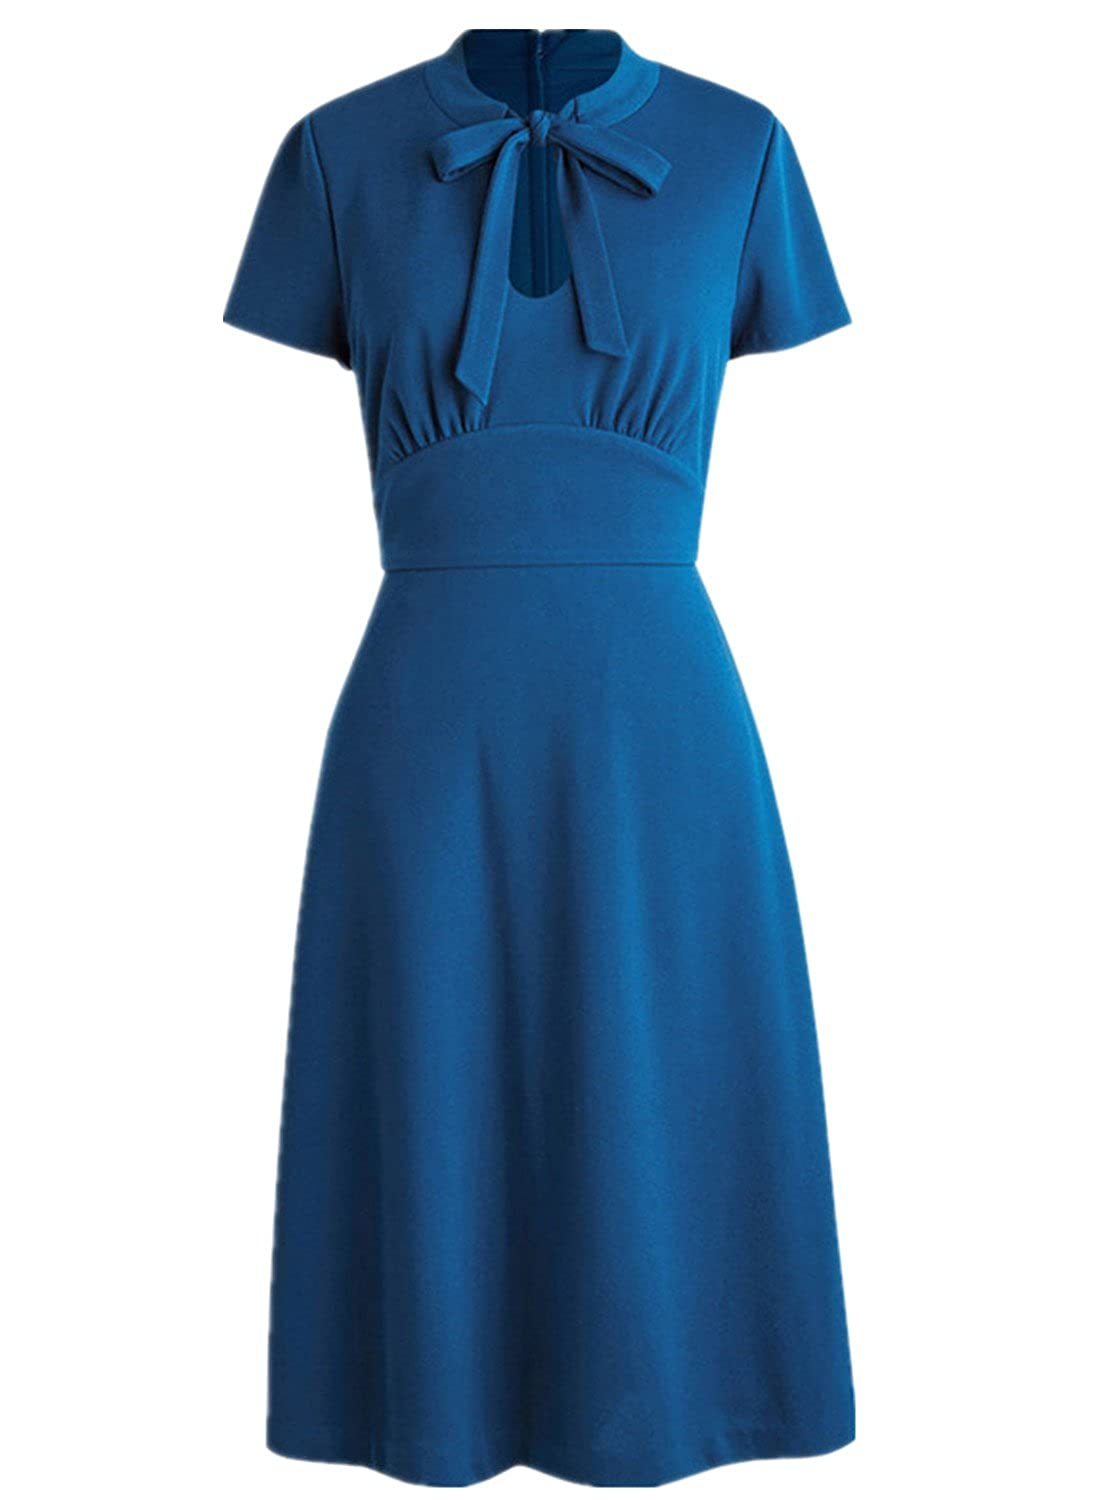 1940s Plus Size Dresses | Swing Dress, Tea Dress Wellwits Womens Keyhole Bow Tie Front 1940s Vintage Collared Dress $23.99 AT vintagedancer.com